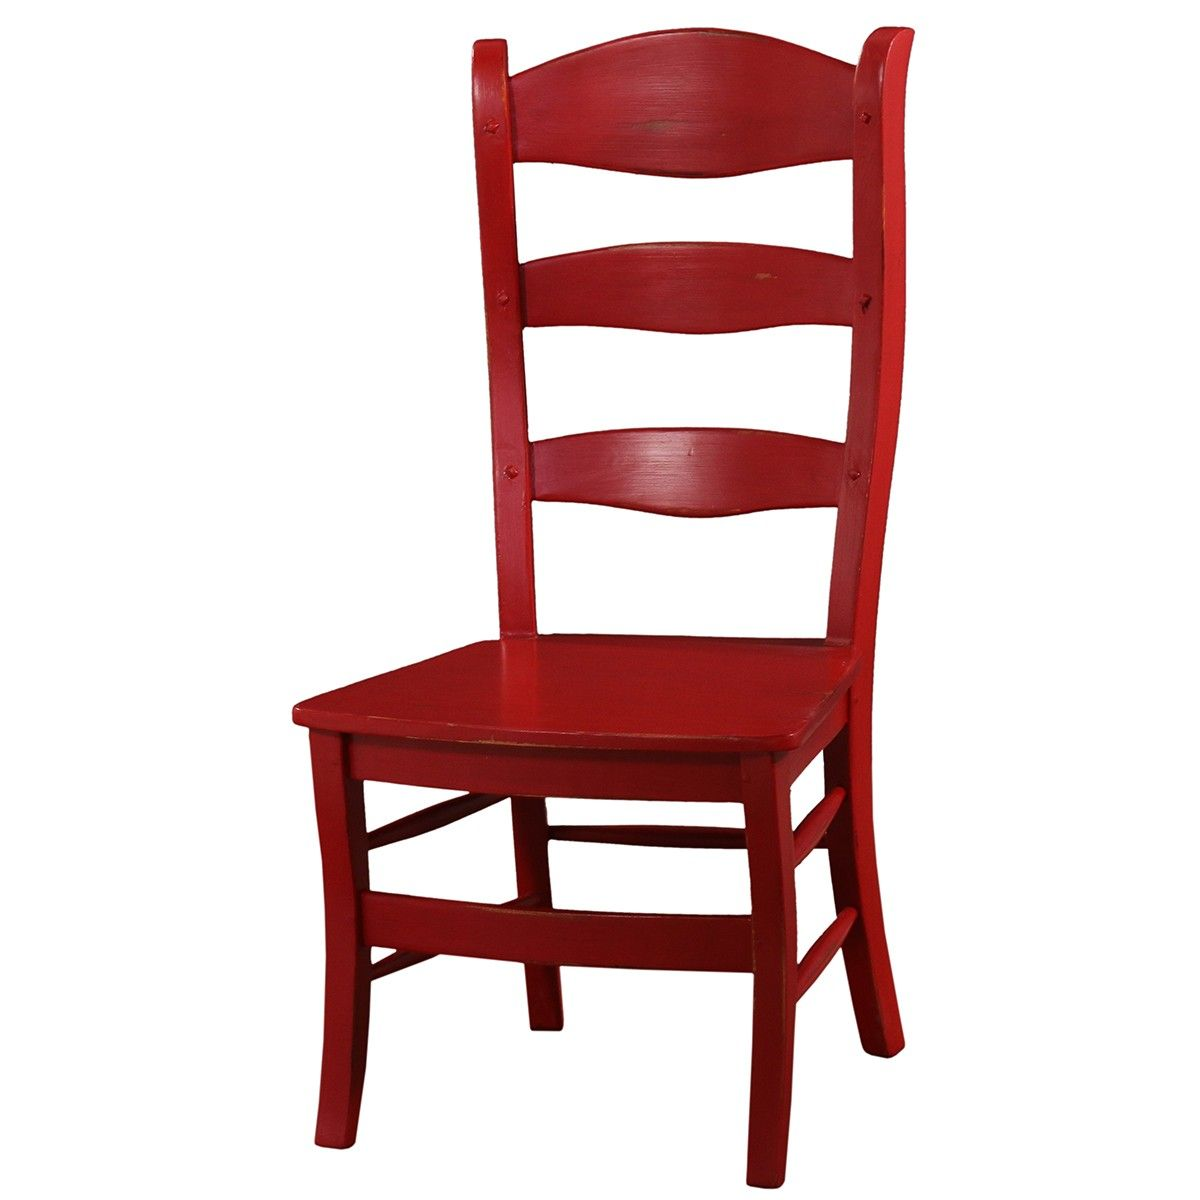 Peg & Dowel Ladder Back with Wooden Seat - Red Distressed